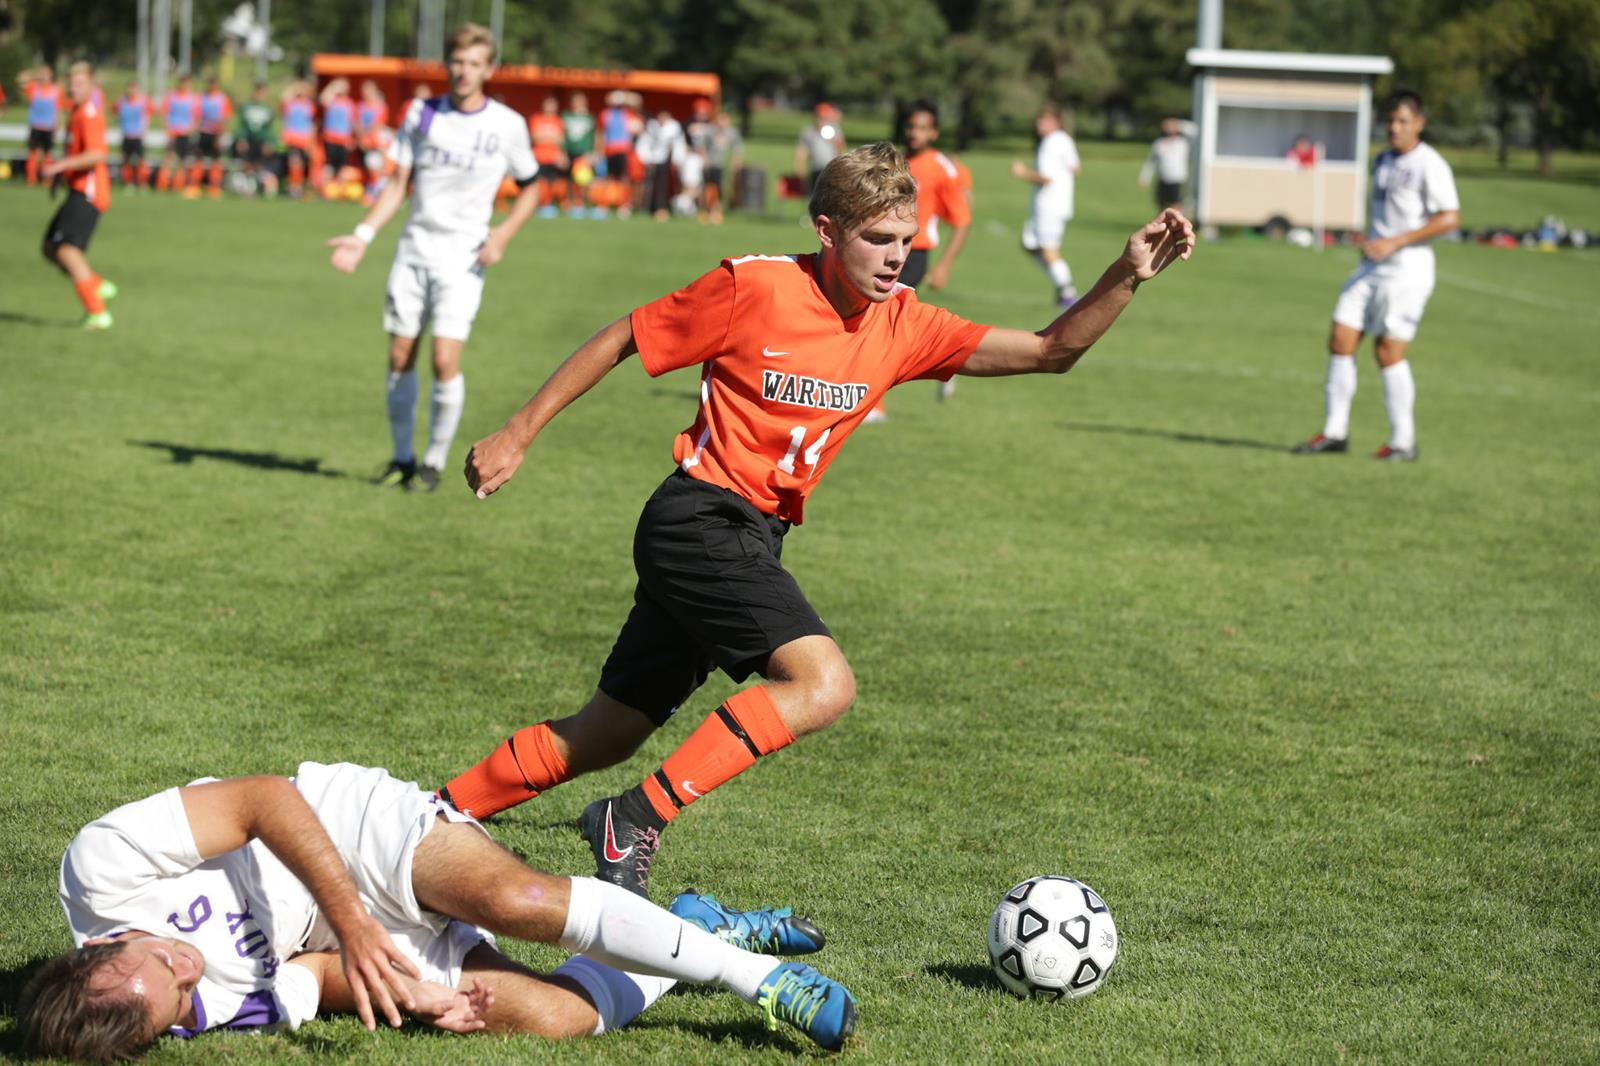 Wartburg sports photo - 1